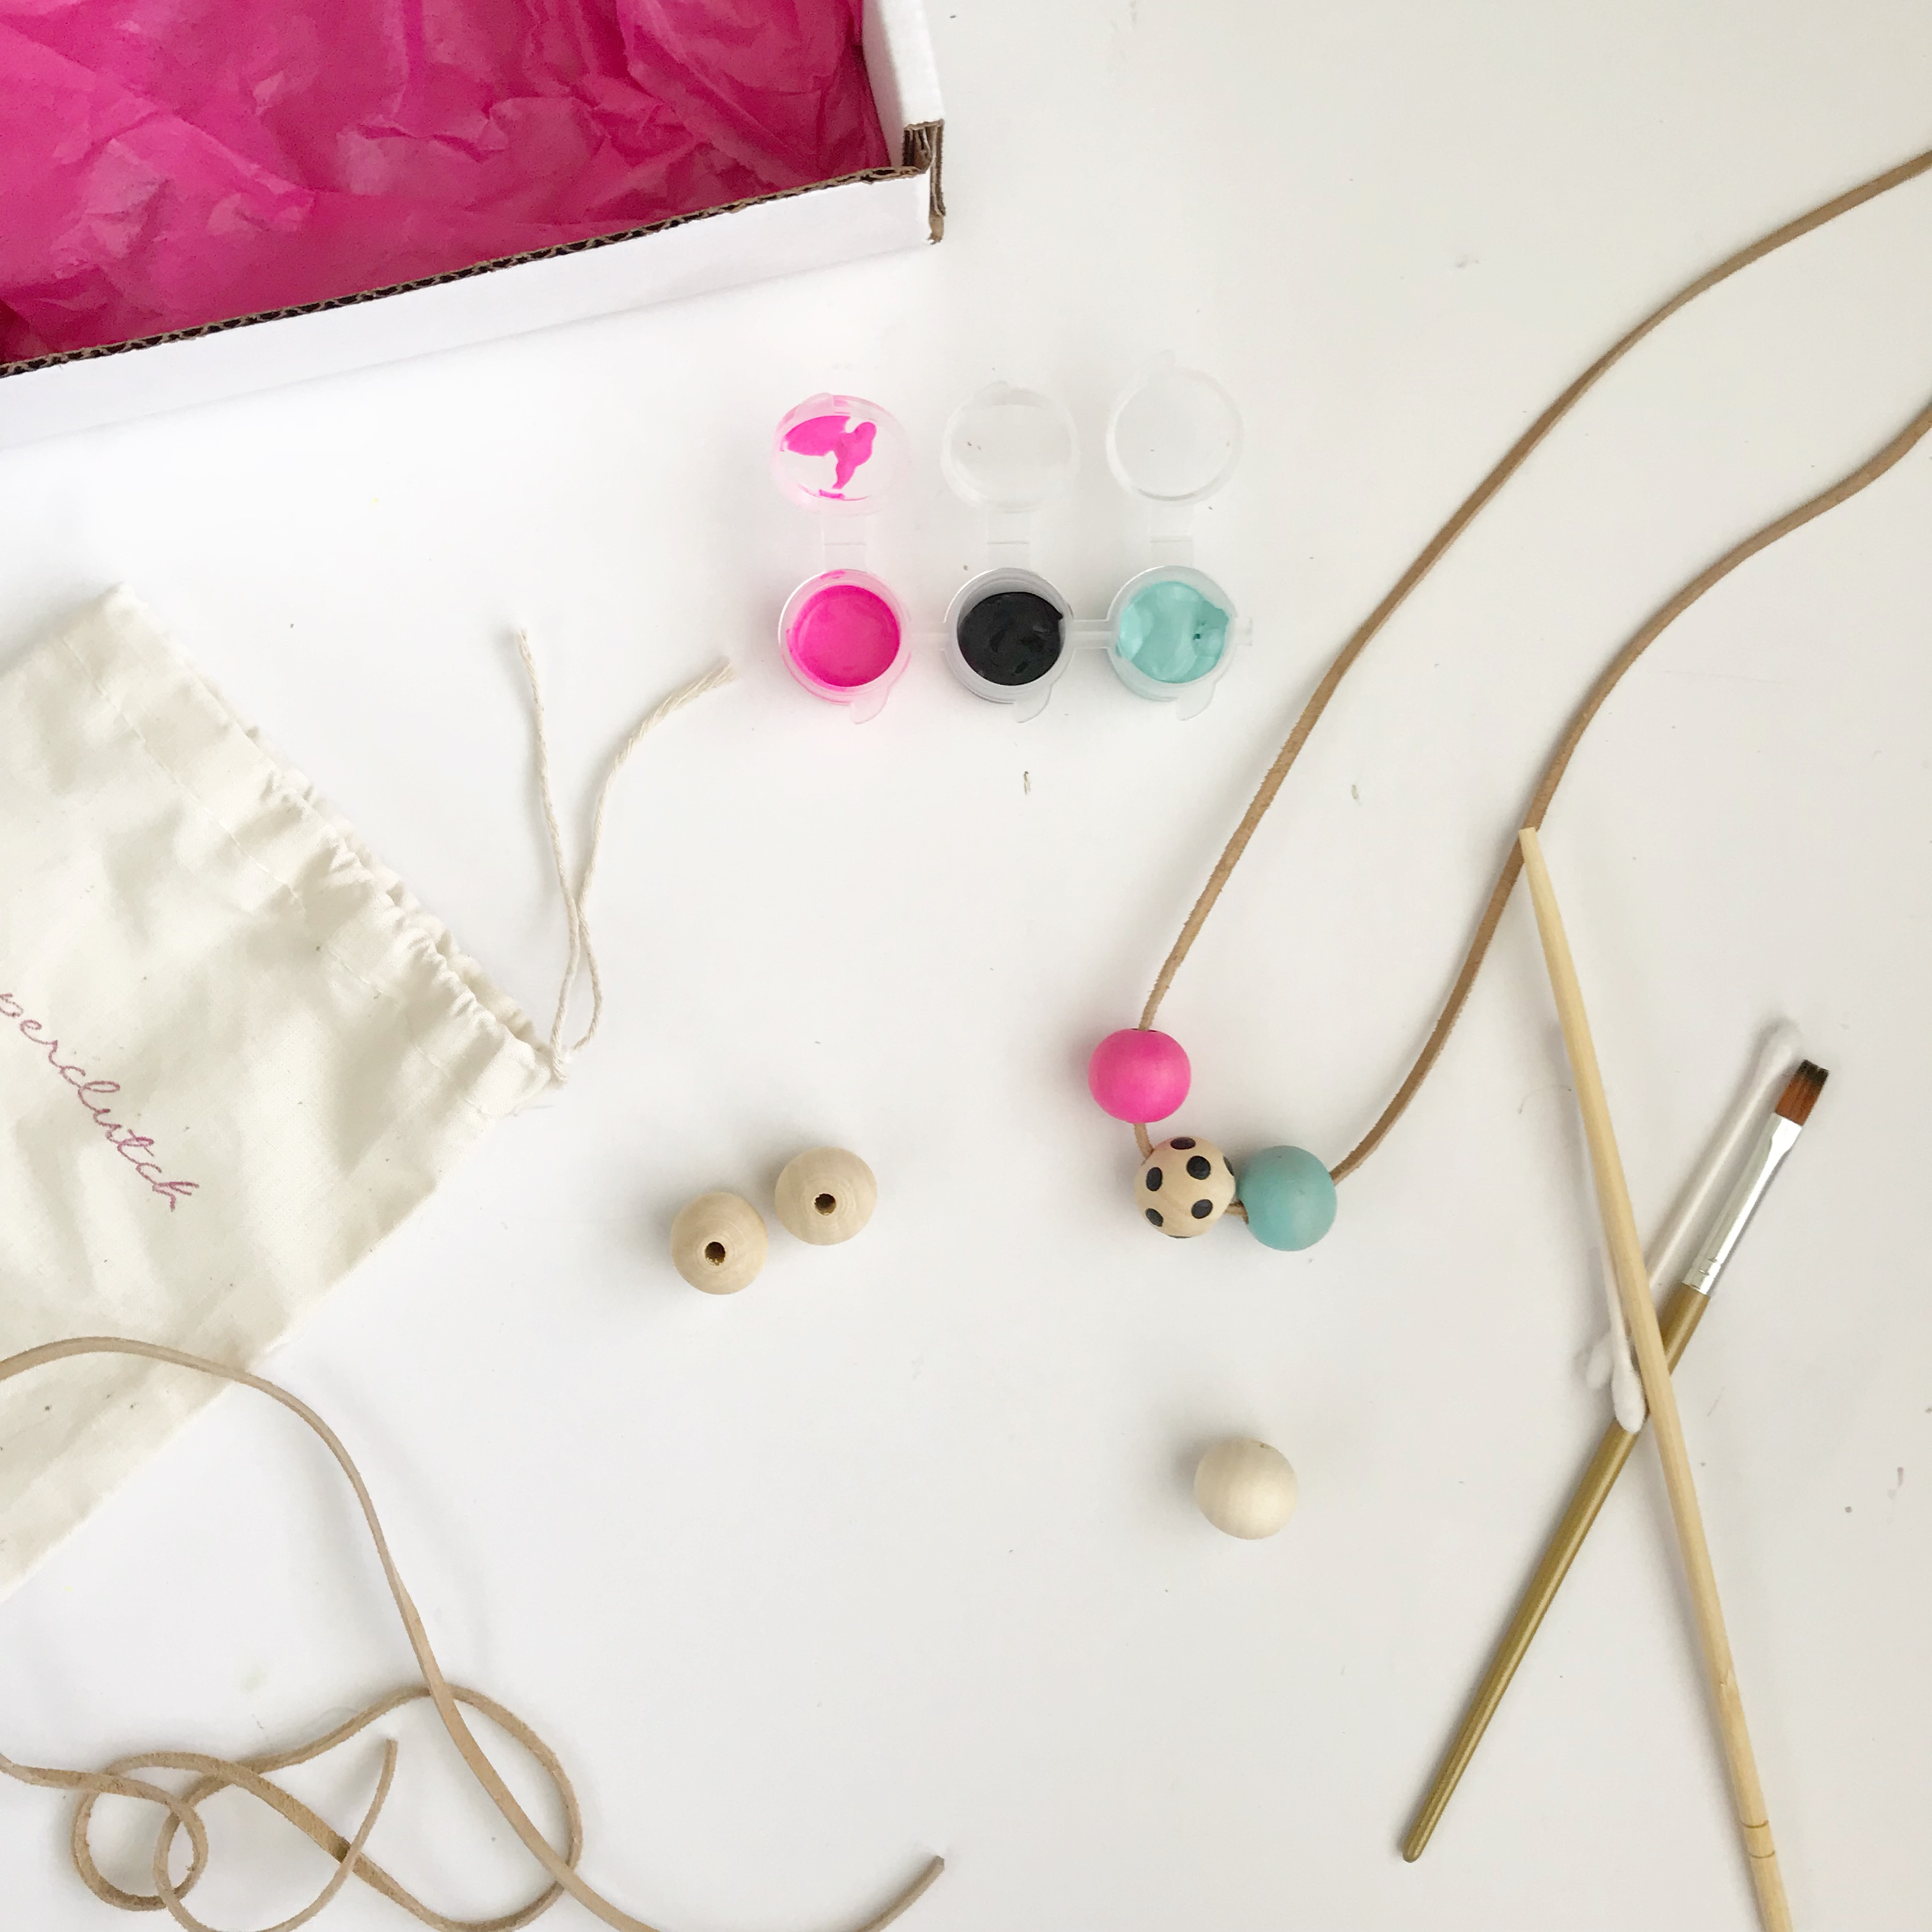 DIY Craft Kit Painted Bead Necklace